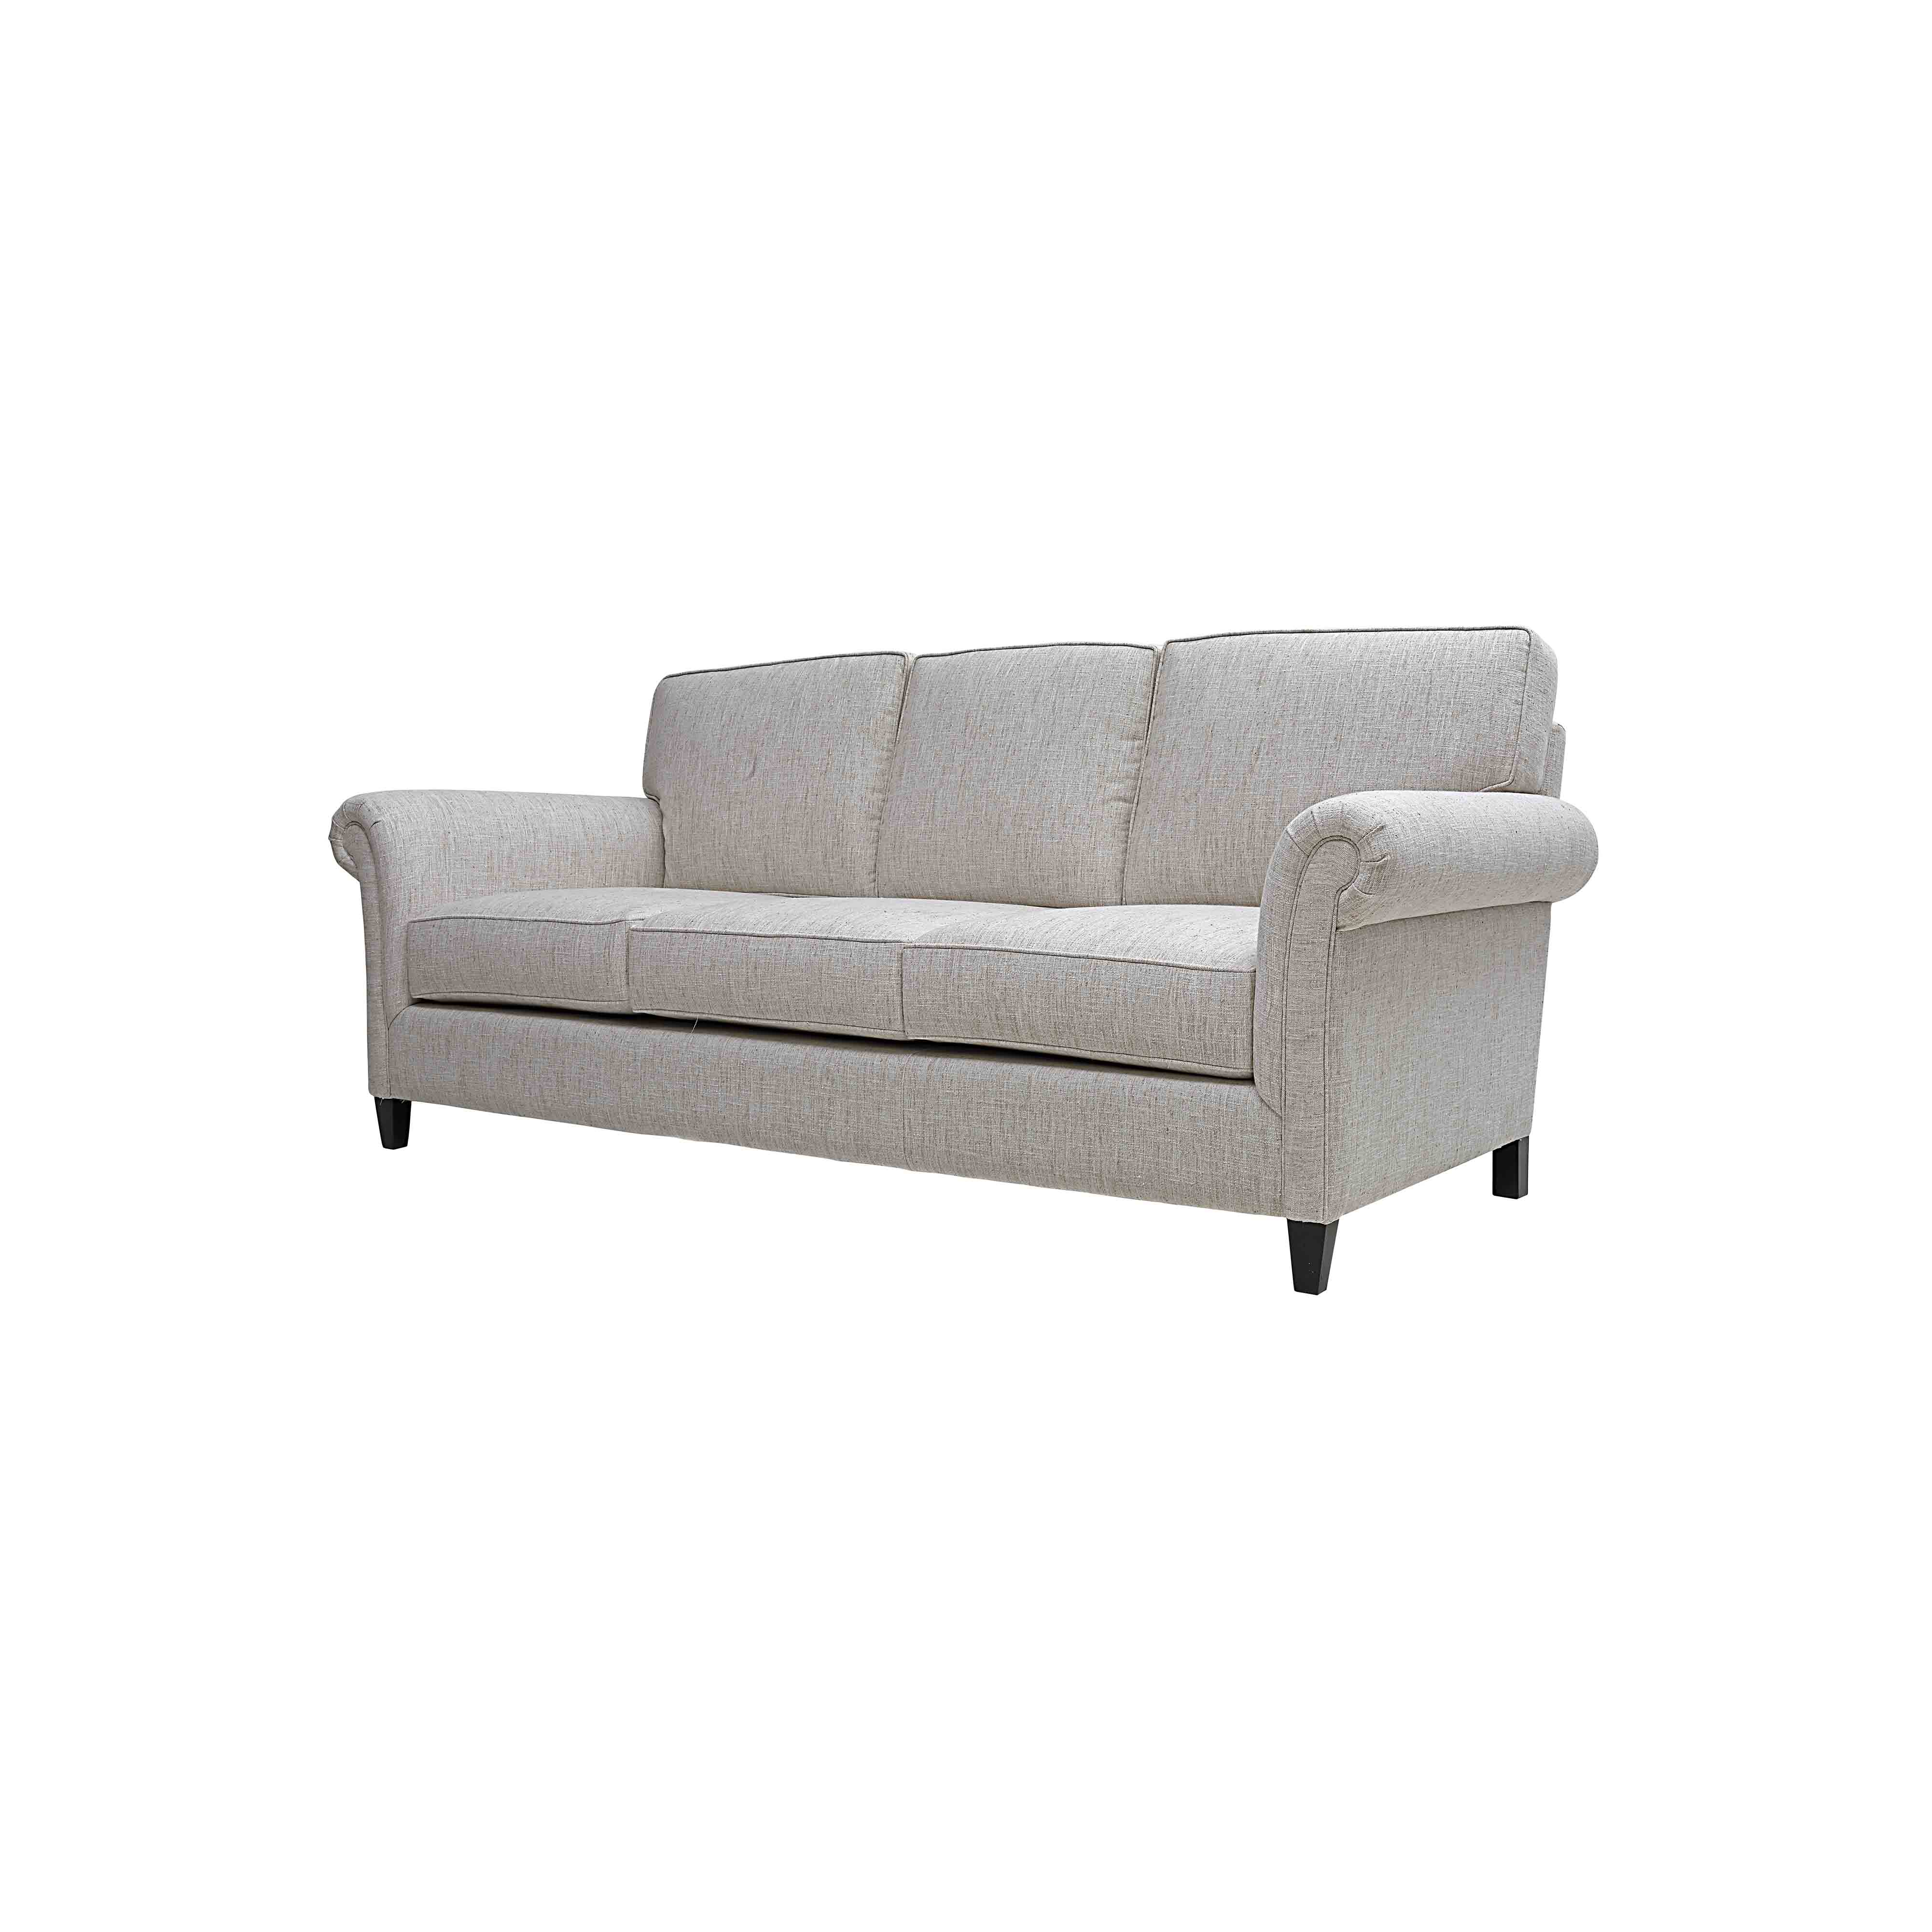 Seraphina two seater